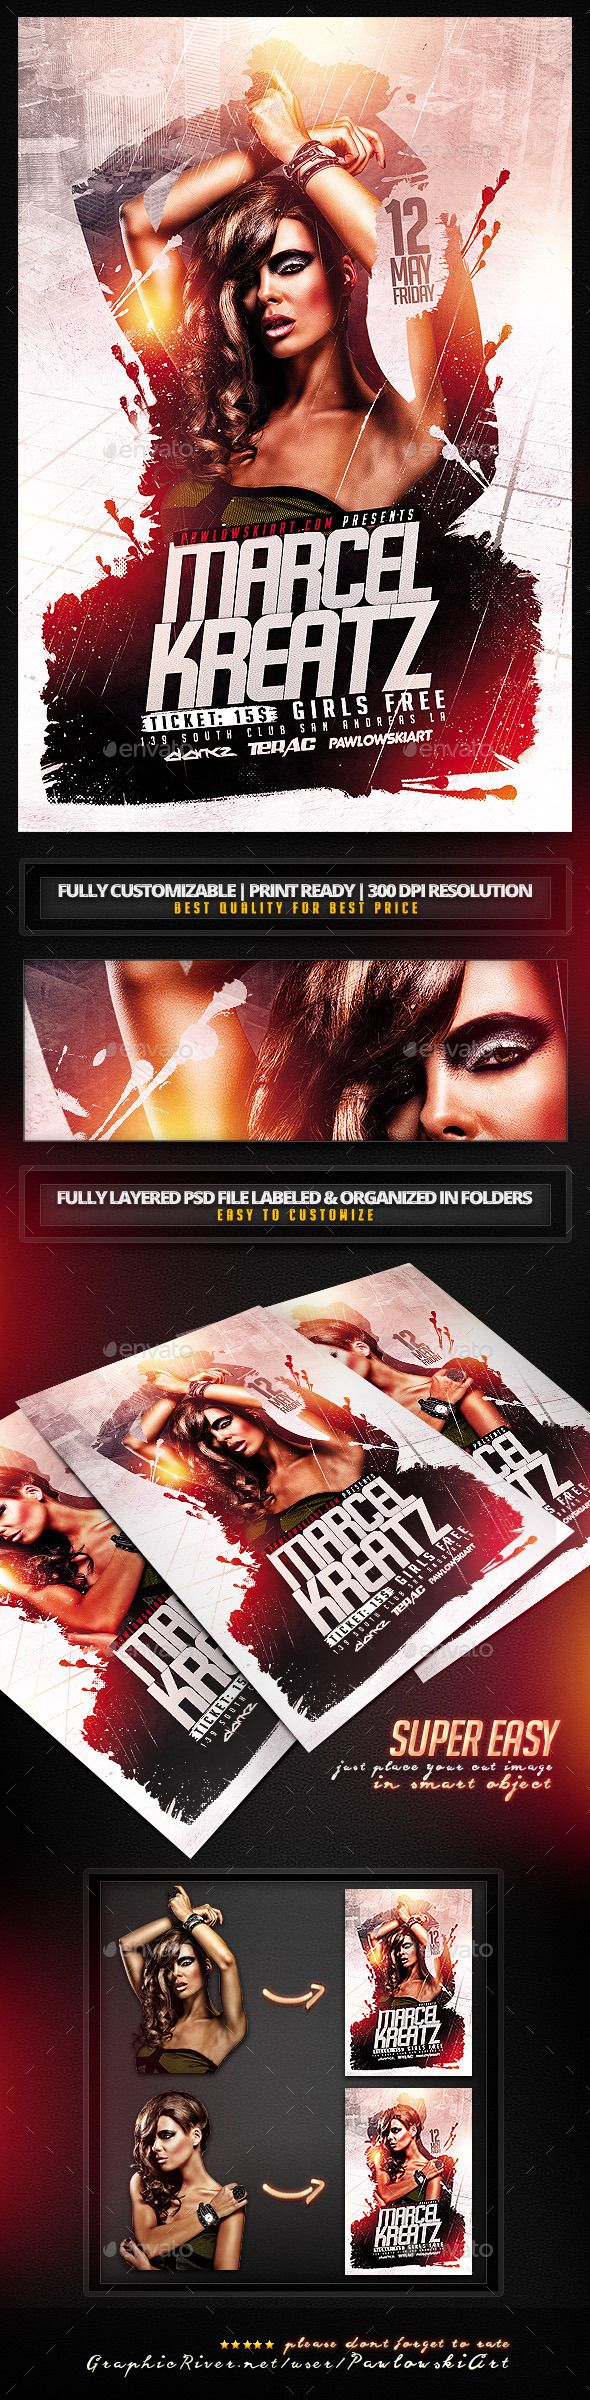 Electro House DJ v2 Flyer PSD Template - Clubs & Parties Events